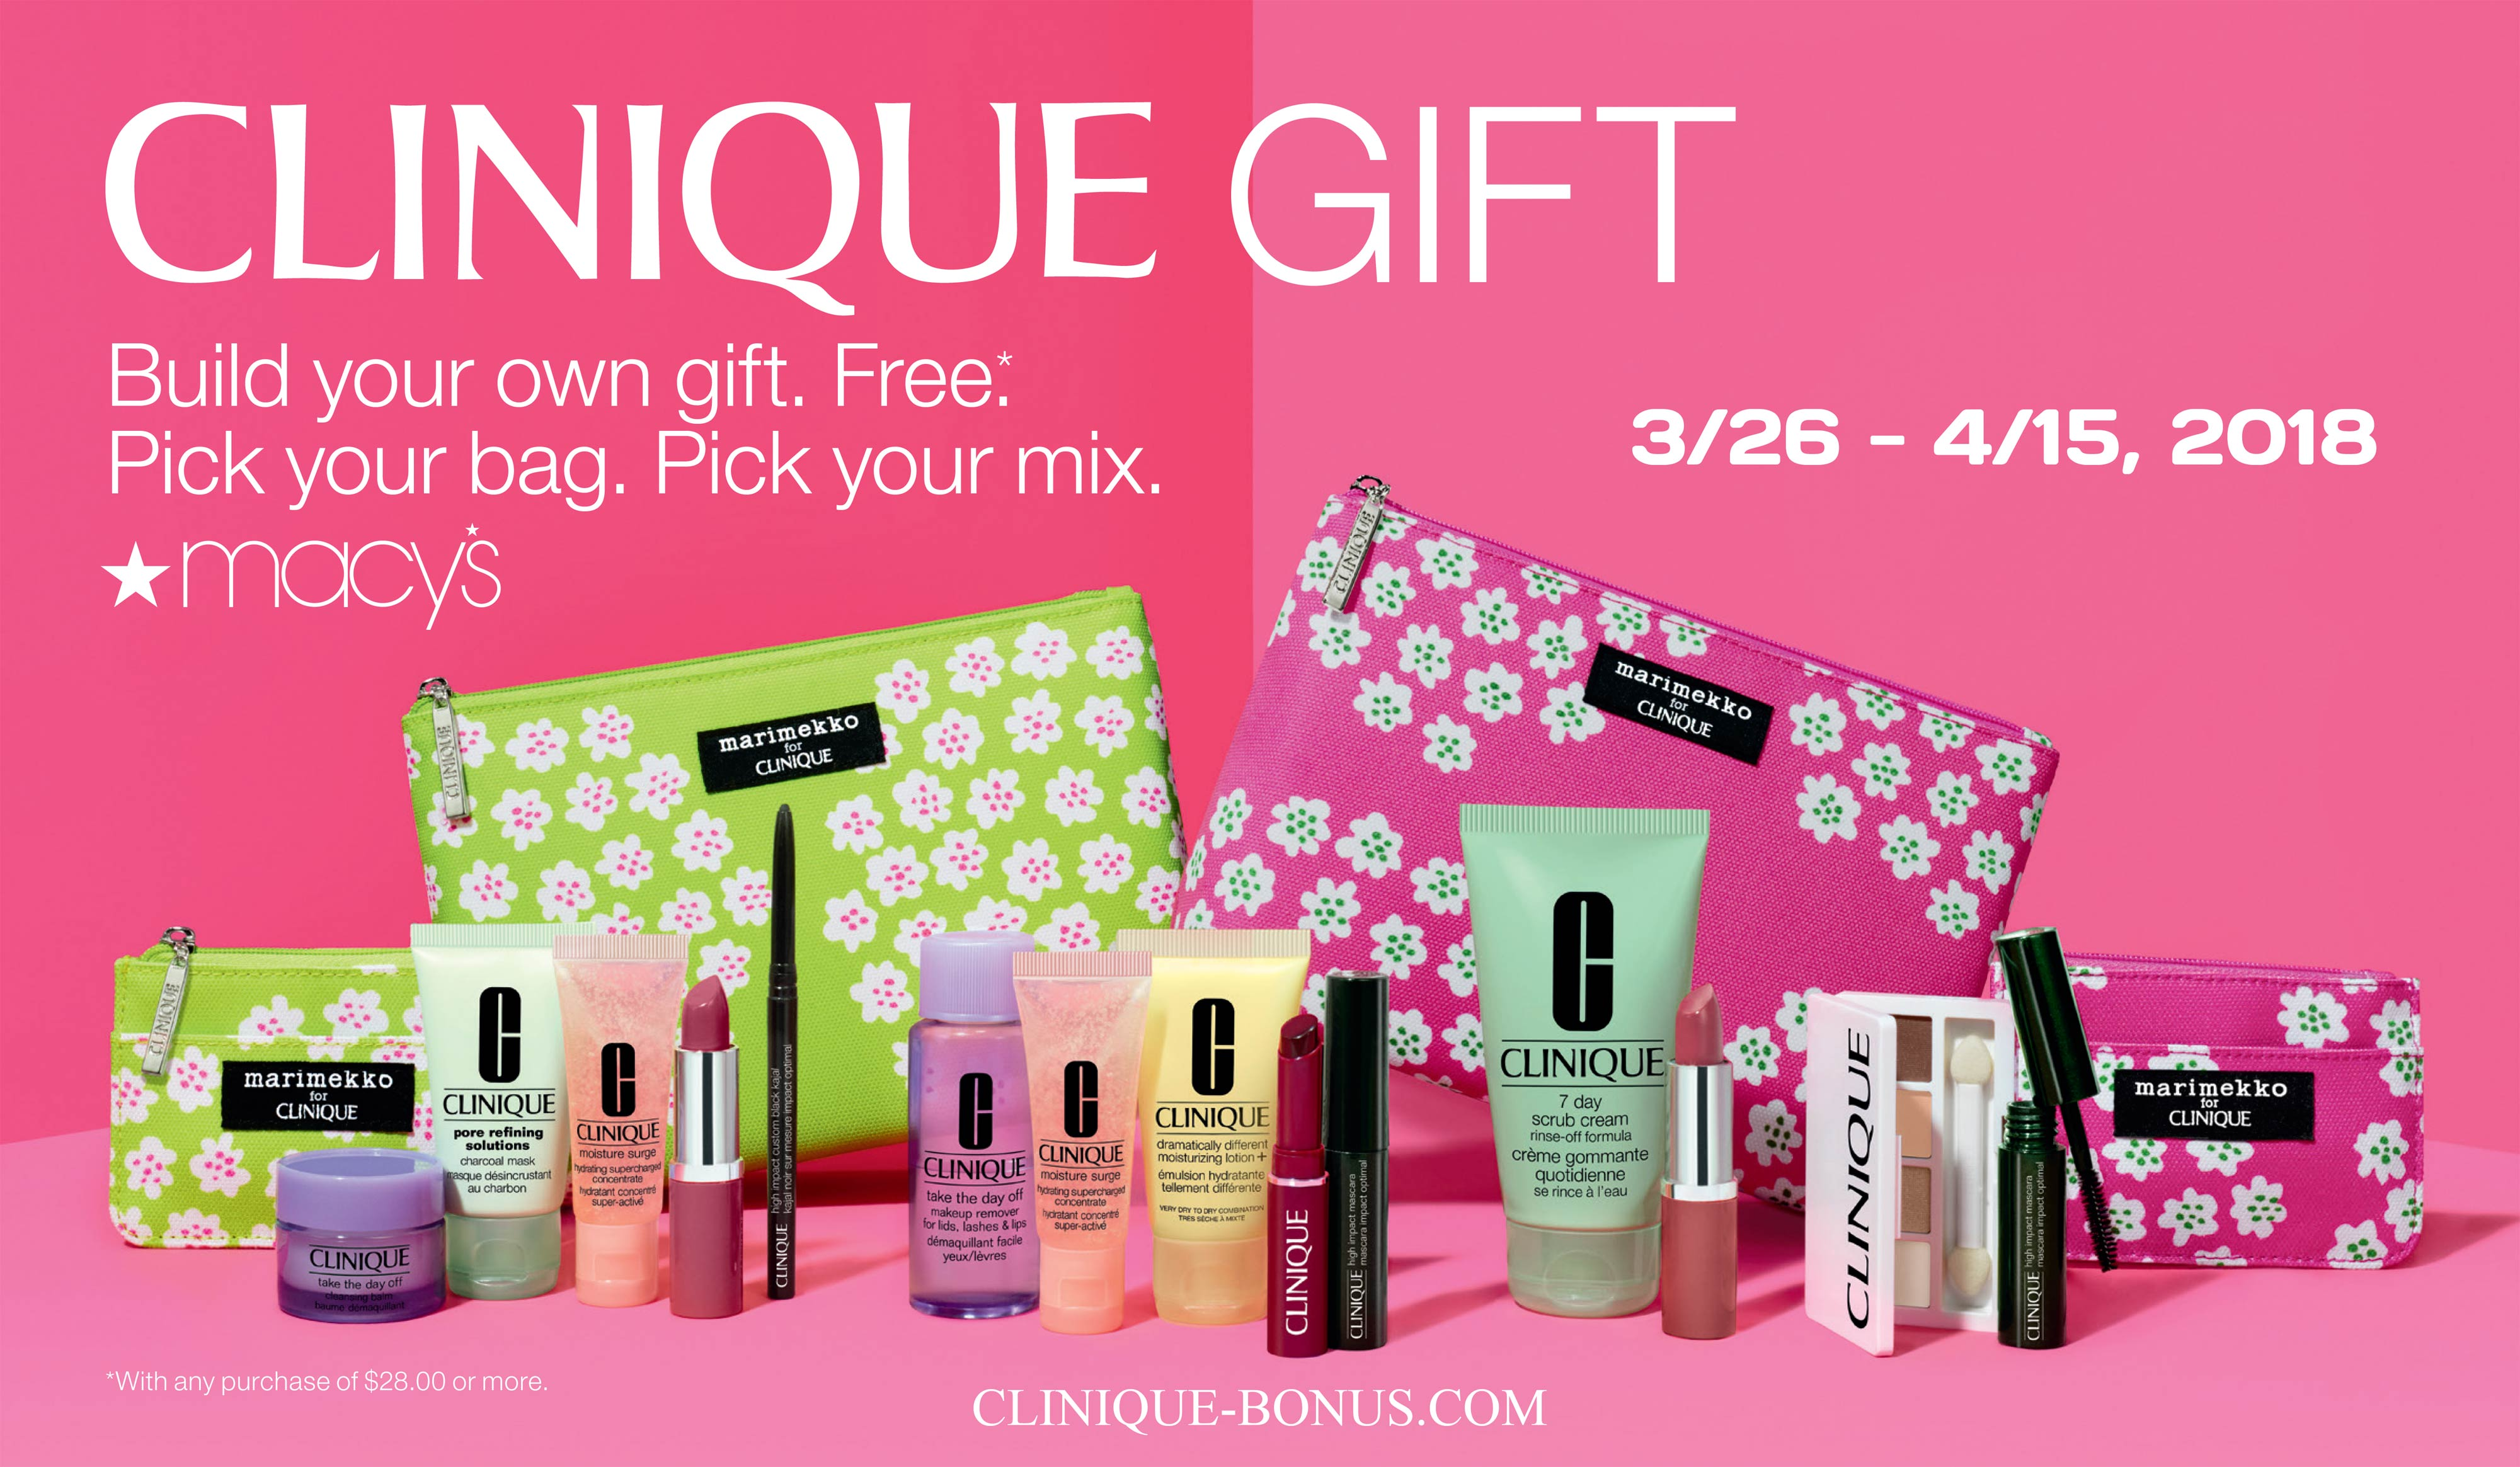 fall clinique gift at